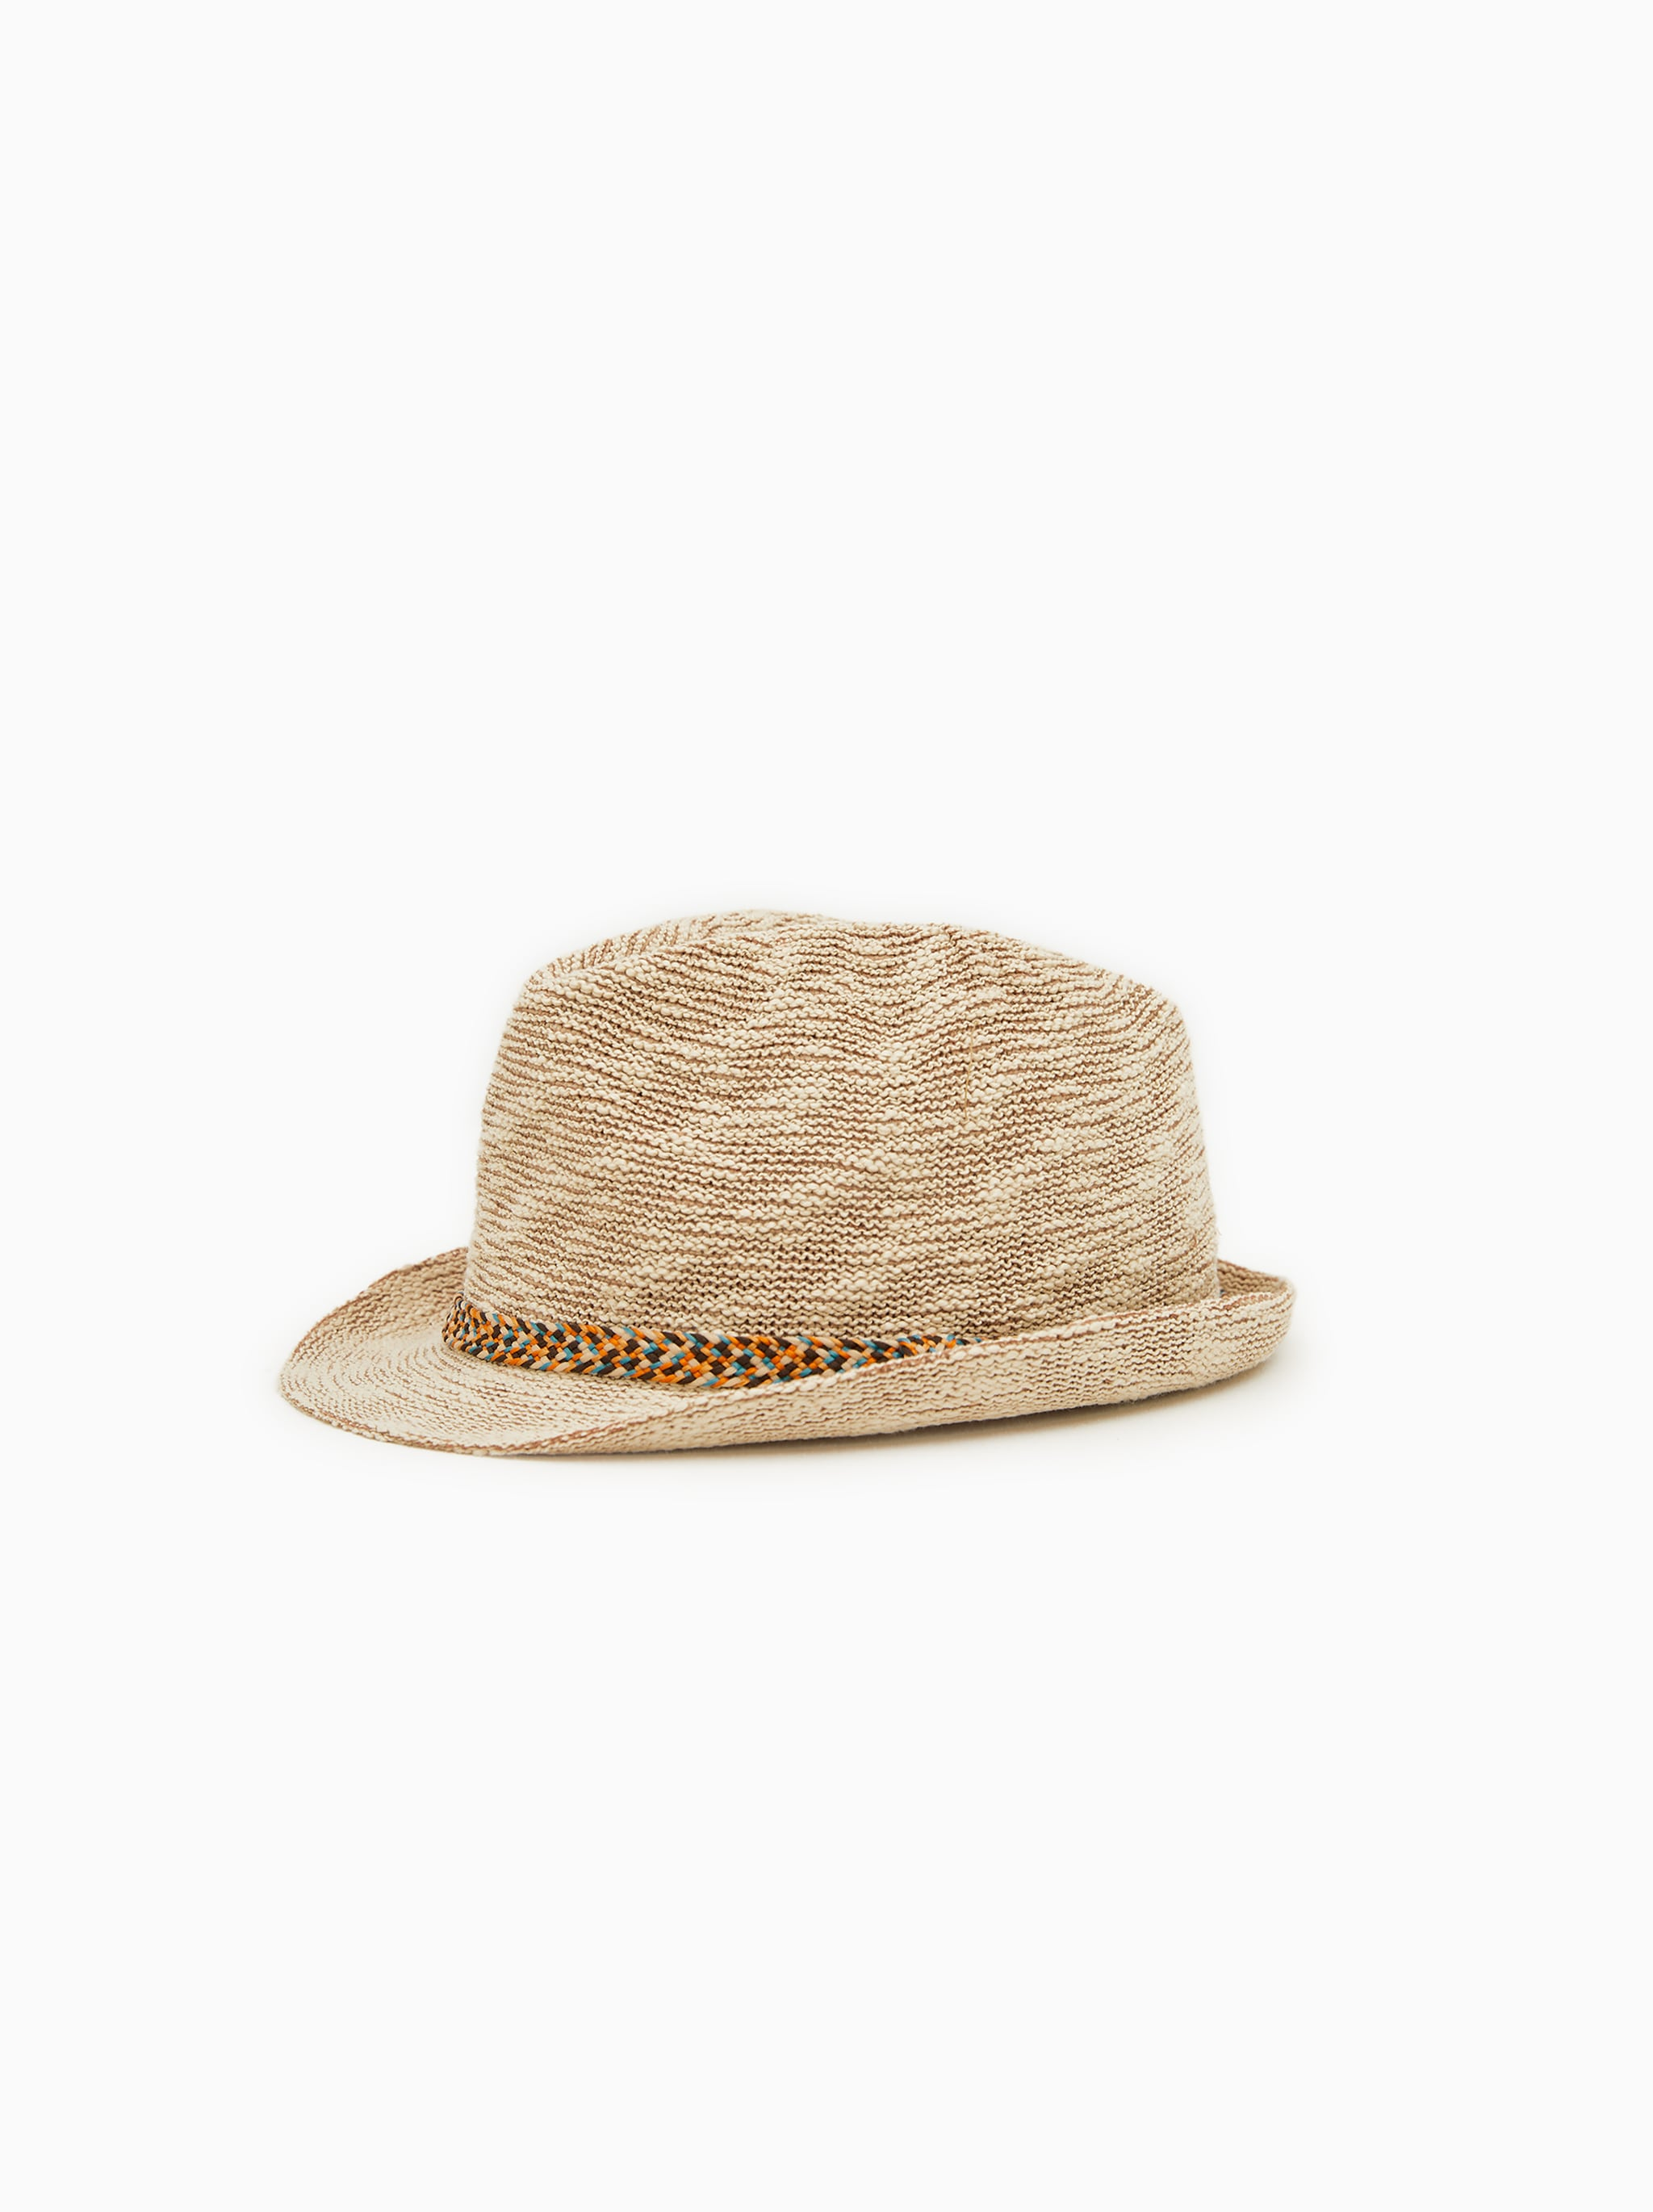 215a8d2069a Zara STRAW HAT WITH BAND